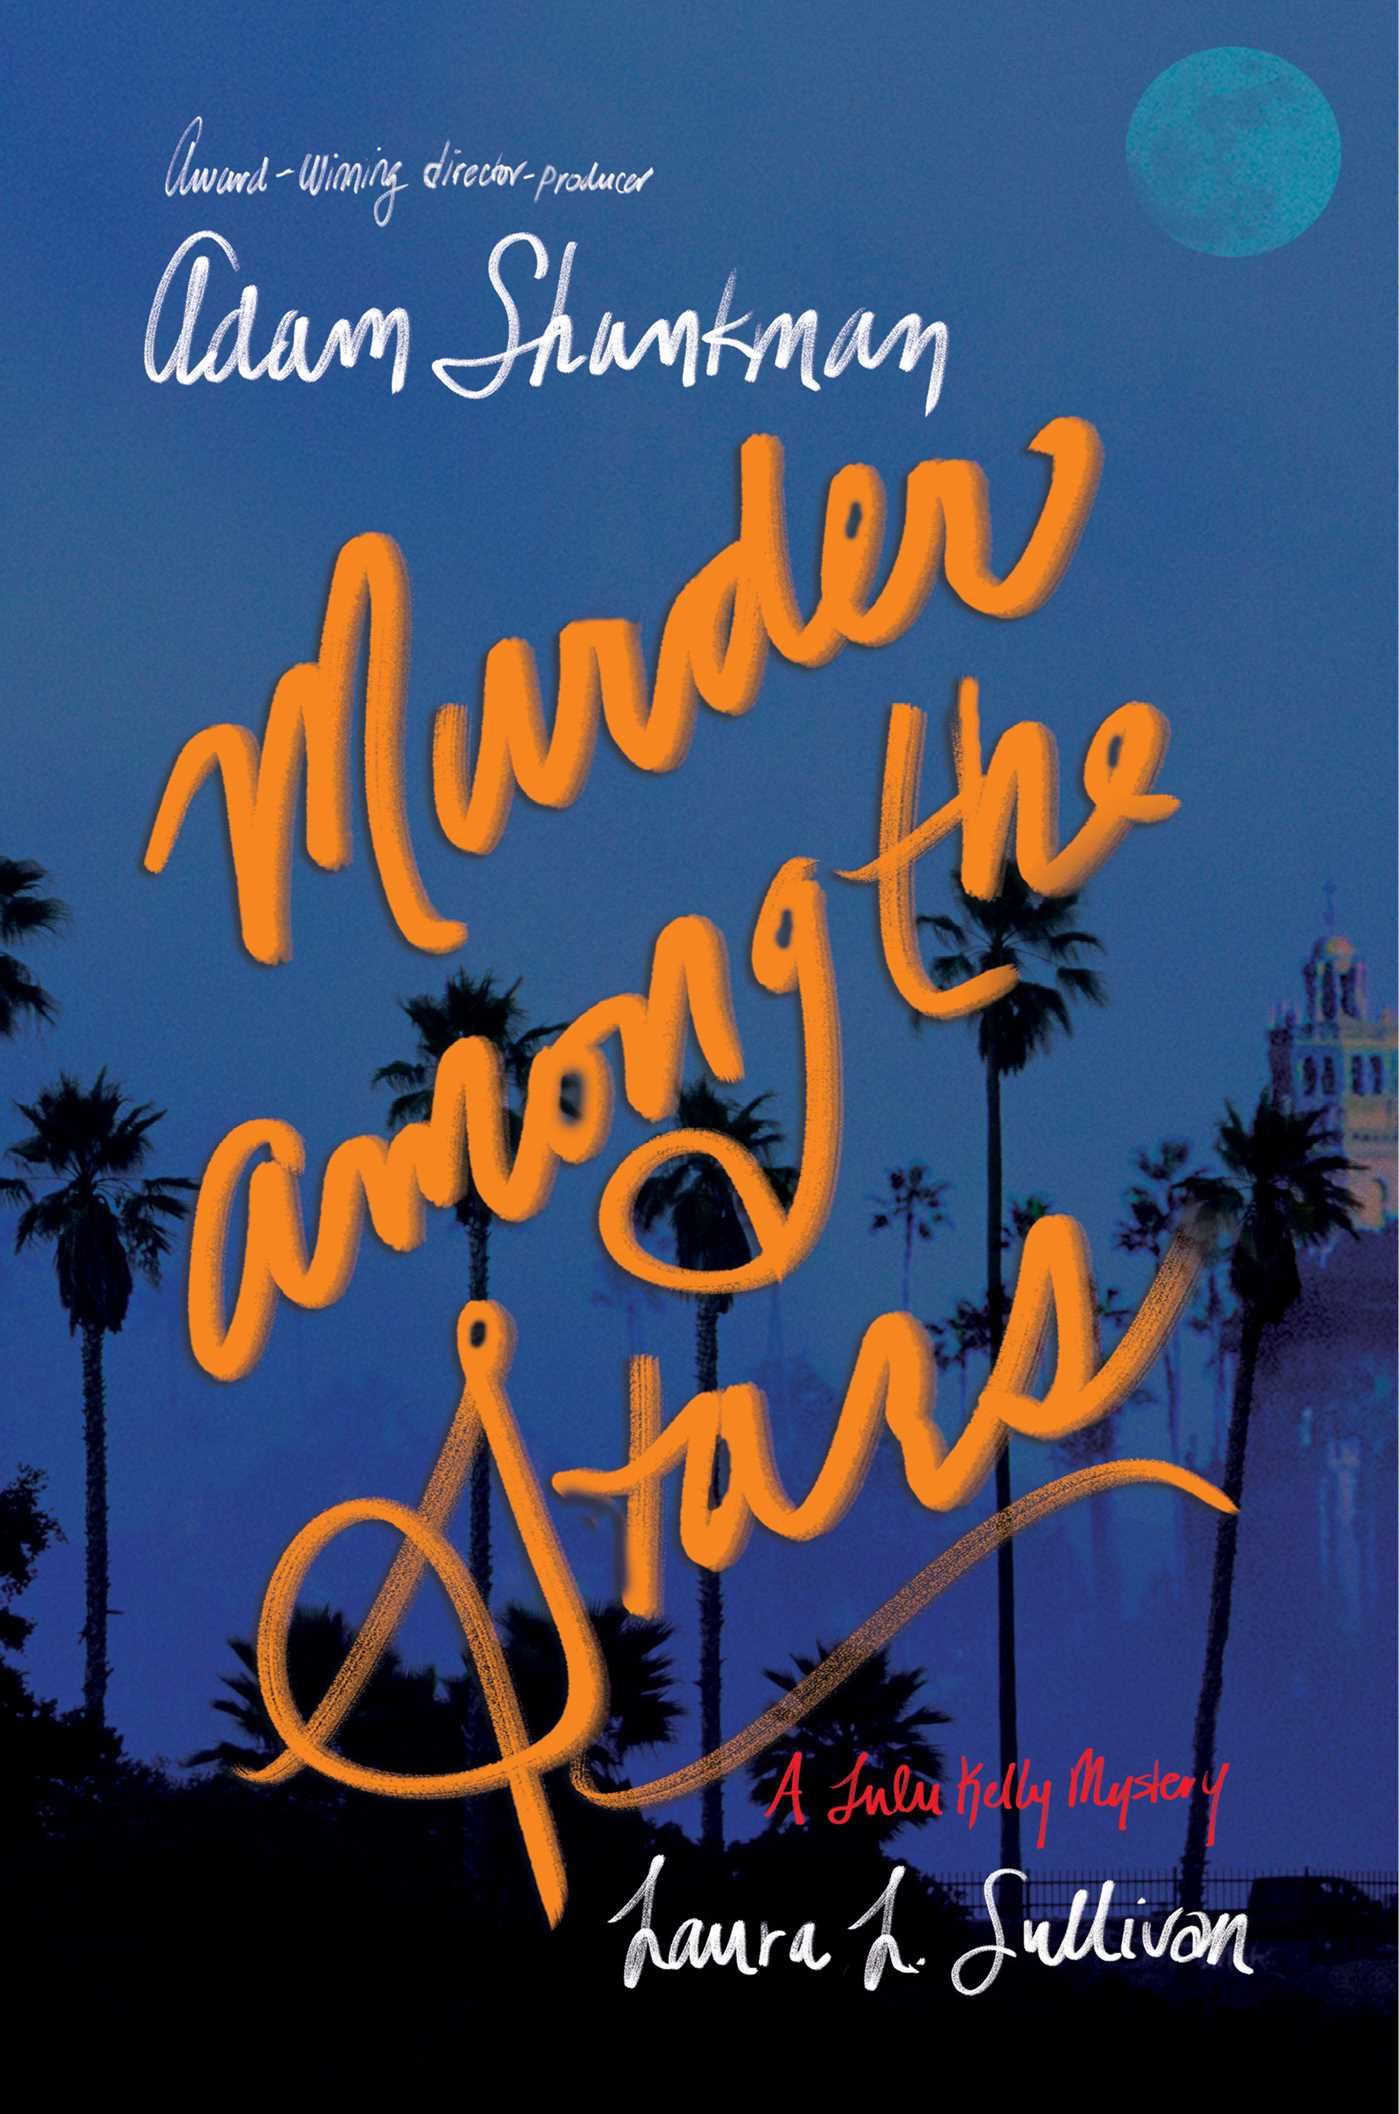 Murder among the stars 9781481447911 hr